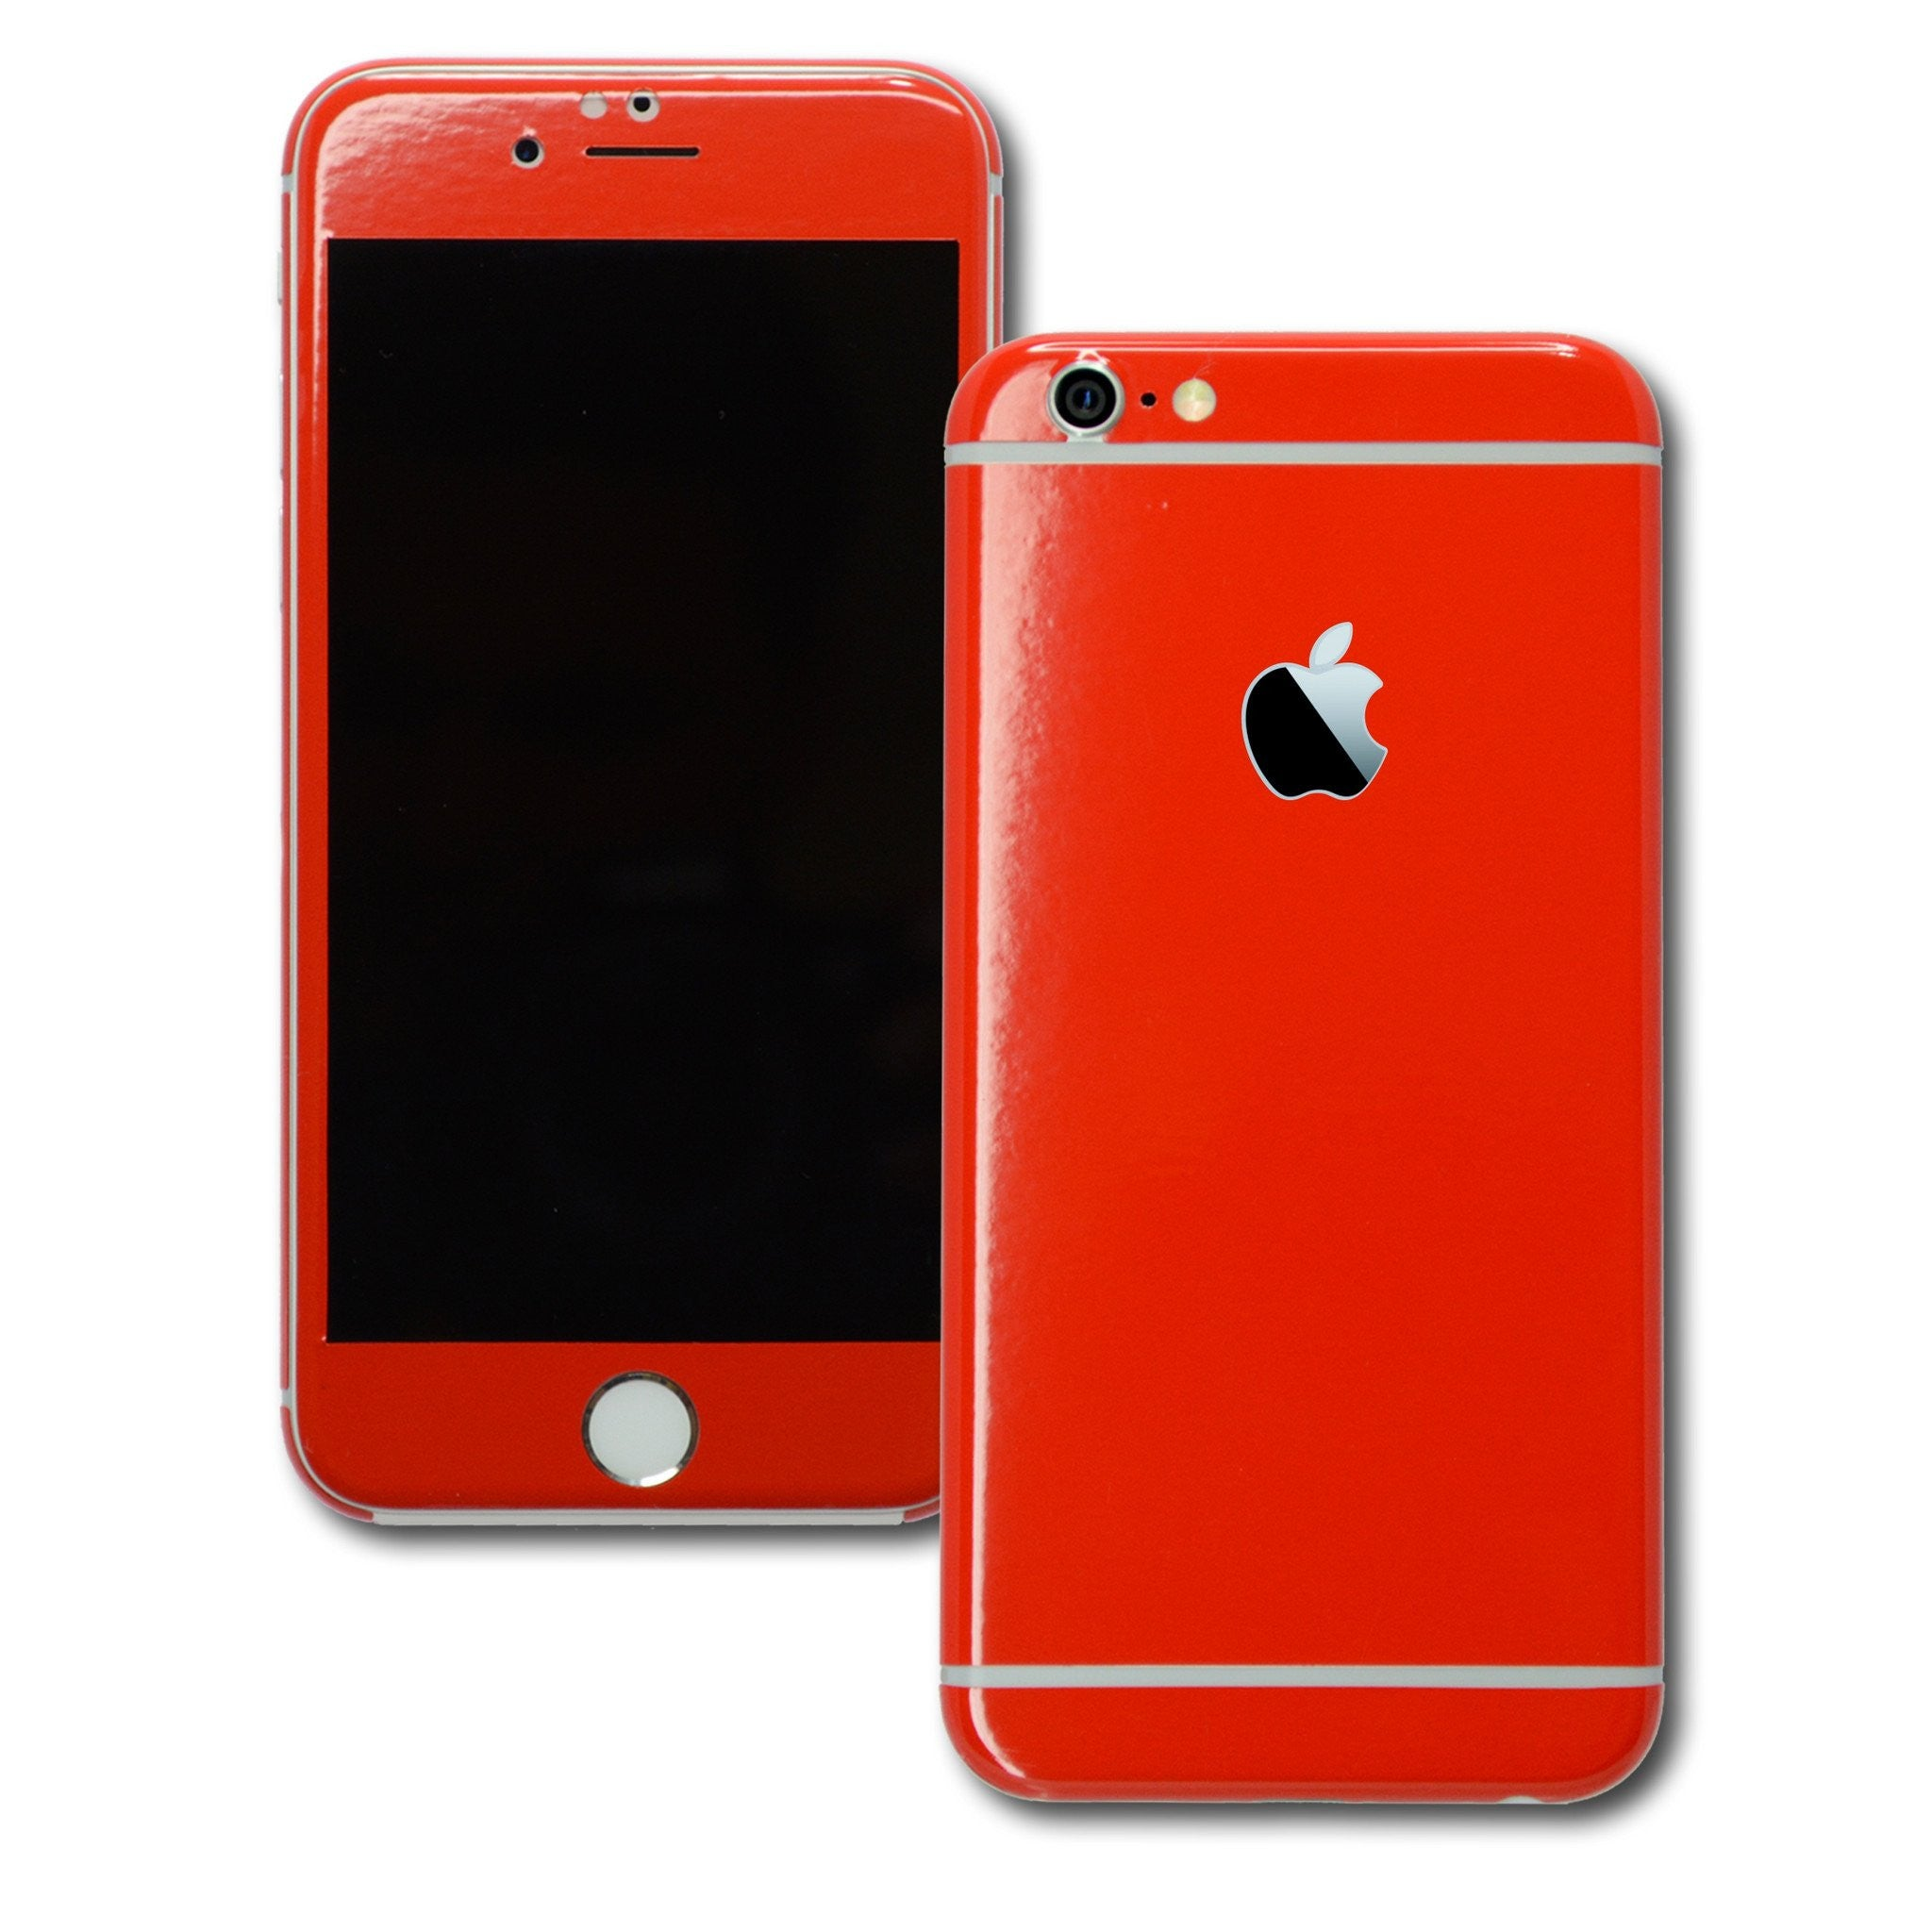 iPhone 6S Colorful GLOSS GLOSSY Bright Red Skin Wrap Sticker Cover Protector Decal by EasySkinz